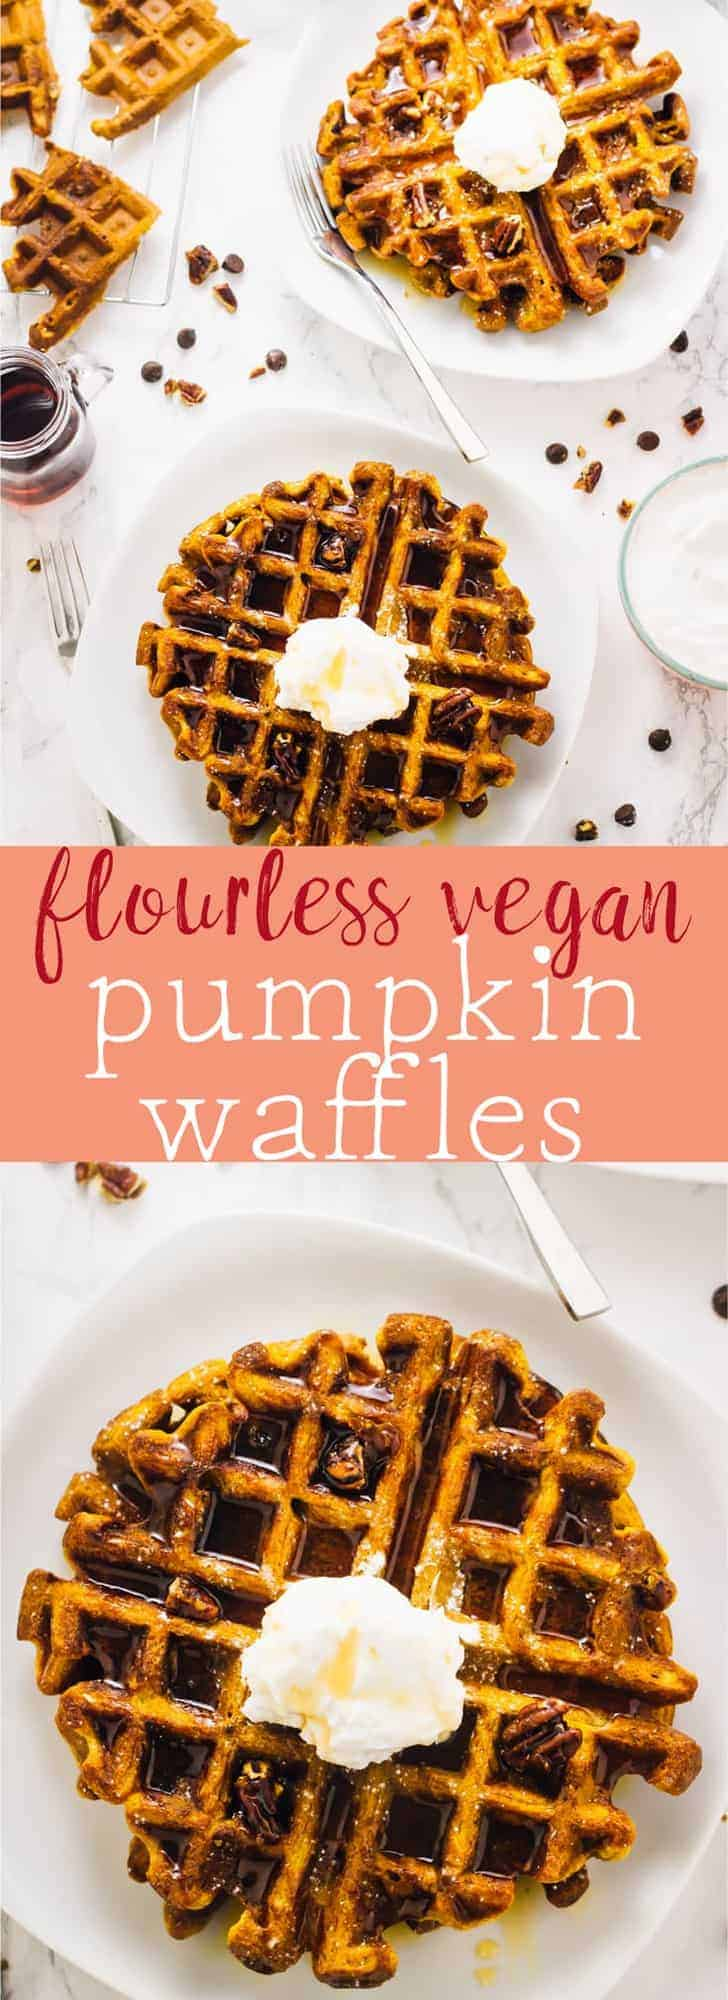 These Flourless Vegan Pumpkin Waffles are a tried and true waffle recipe. They're loaded with delicious pumpkin flavour, are freezer-friendly and are so easy to make! via https://jessicainthekitchen.com